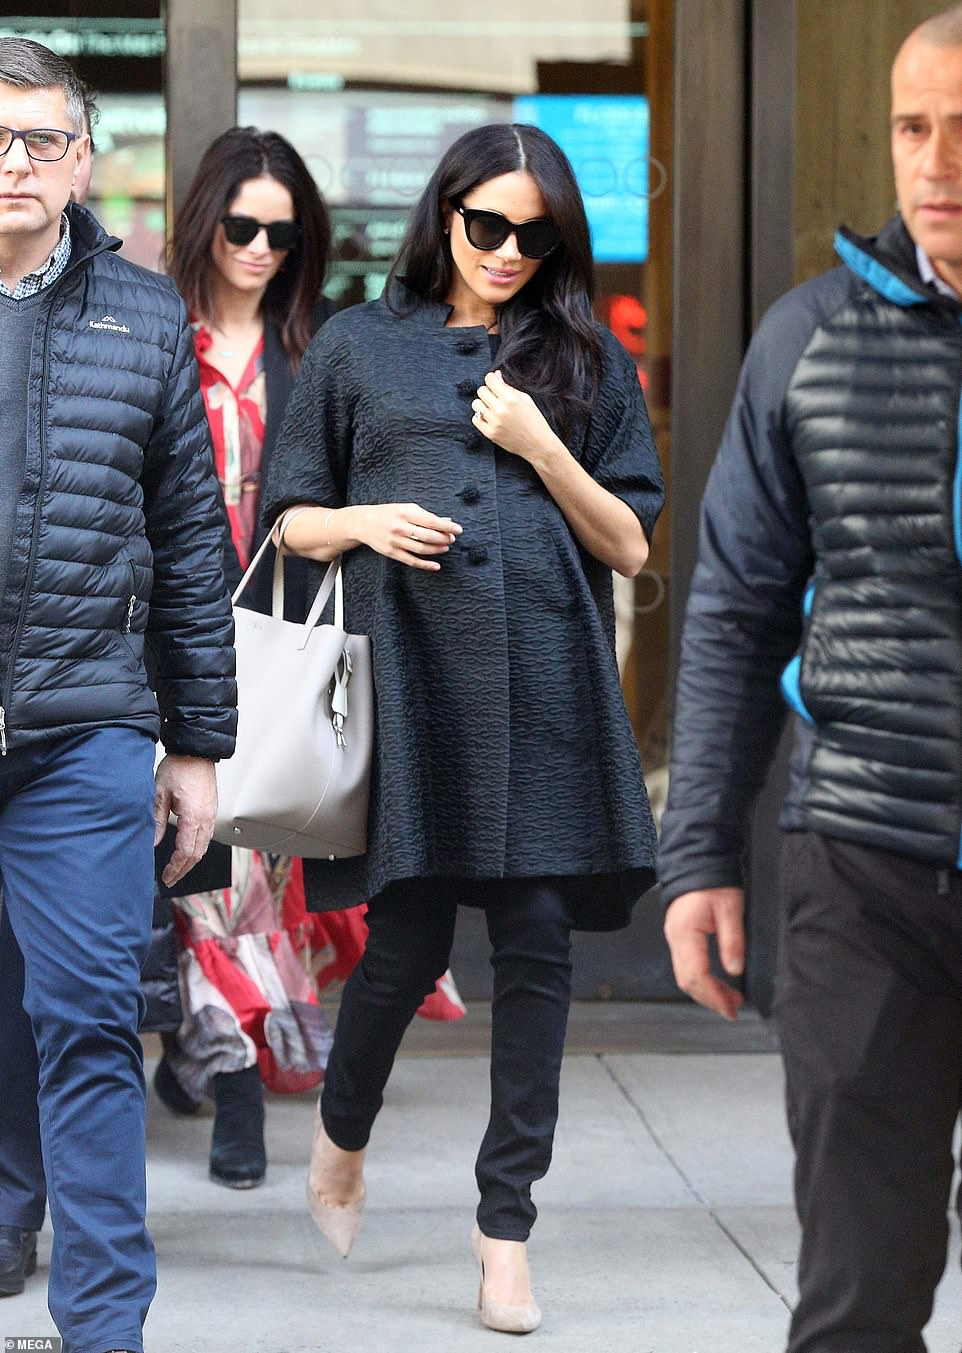 Watchful eye: Meghan and Abigail were flanked by two plain clothes officers as they made their way out of the Met Breuer, before crossing the street and heading into The Surrey hotel